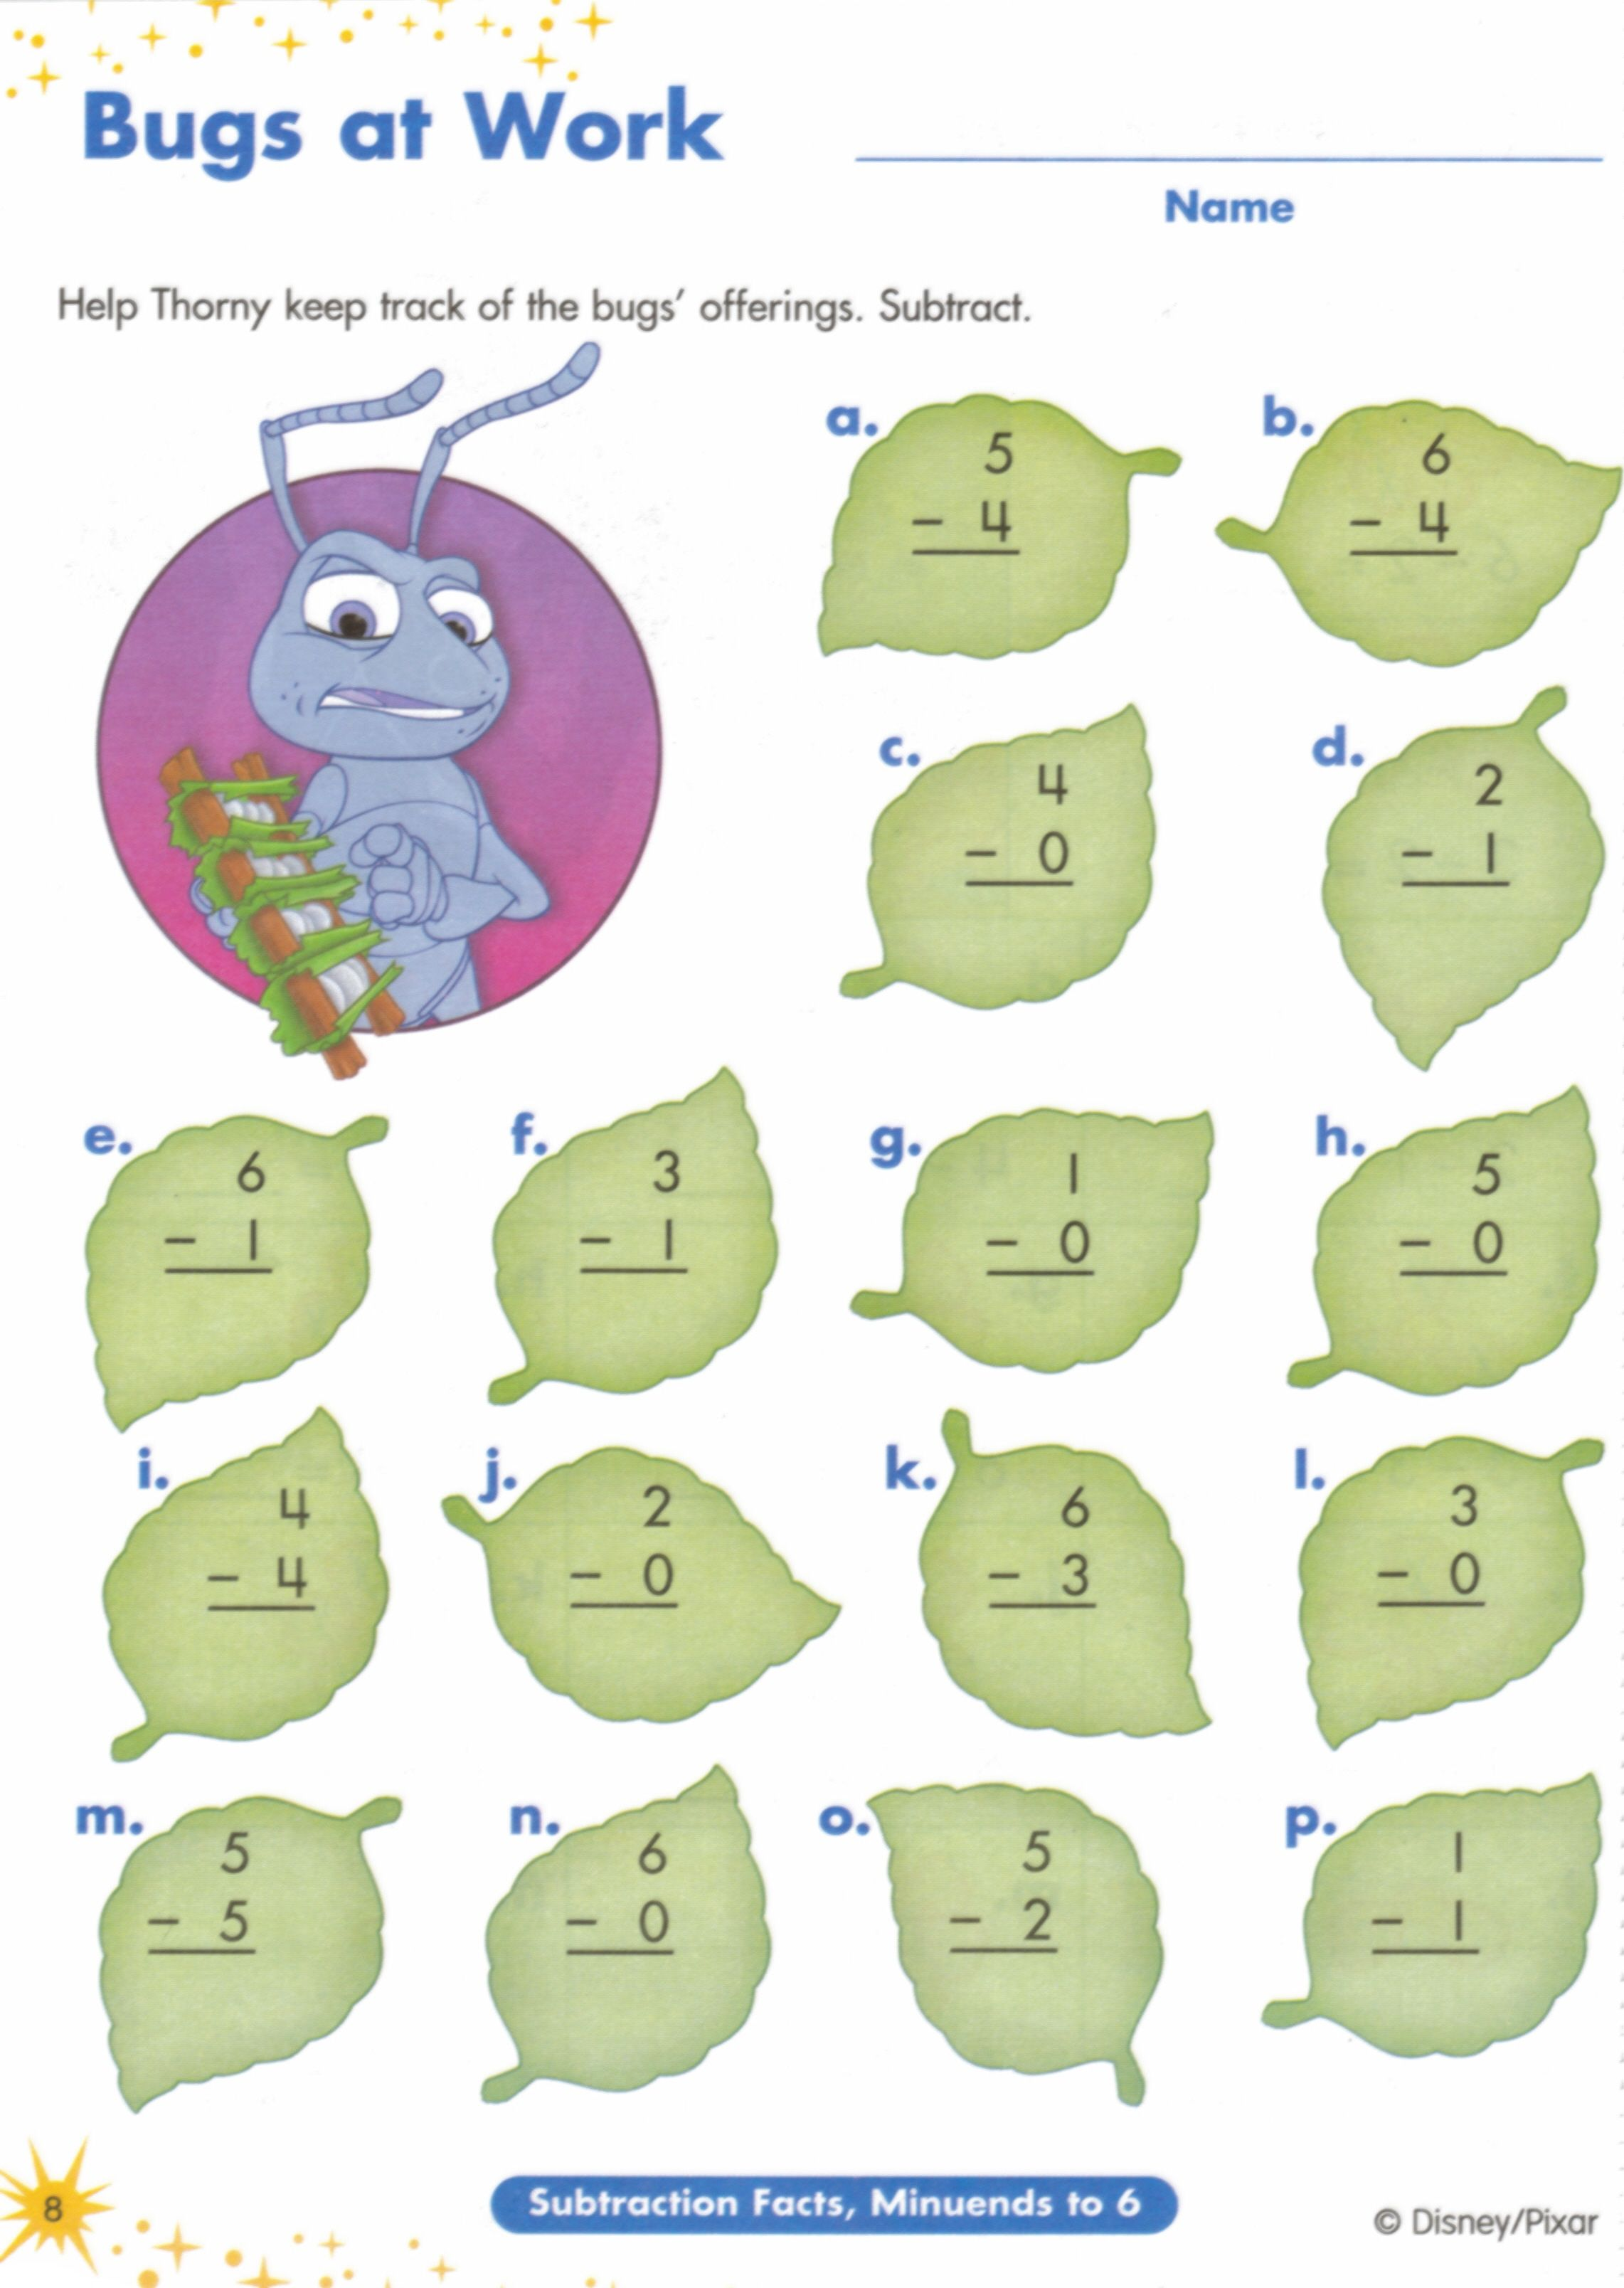 Proatmealus  Ravishing  Images About Worksheets On Pinterest  Fun Facts For Kids  With Goodlooking  Images About Worksheets On Pinterest  Fun Facts For Kids Earth Day Worksheets And Jungles With Appealing Math Worksheets For Grade  Free Printable Also Trace The Line Worksheets In Addition Creation Story Worksheet And Set Notation Worksheets As Well As Telling The Time Worksheet Additionally Les Animaux Worksheet From Pinterestcom With Proatmealus  Goodlooking  Images About Worksheets On Pinterest  Fun Facts For Kids  With Appealing  Images About Worksheets On Pinterest  Fun Facts For Kids Earth Day Worksheets And Jungles And Ravishing Math Worksheets For Grade  Free Printable Also Trace The Line Worksheets In Addition Creation Story Worksheet From Pinterestcom